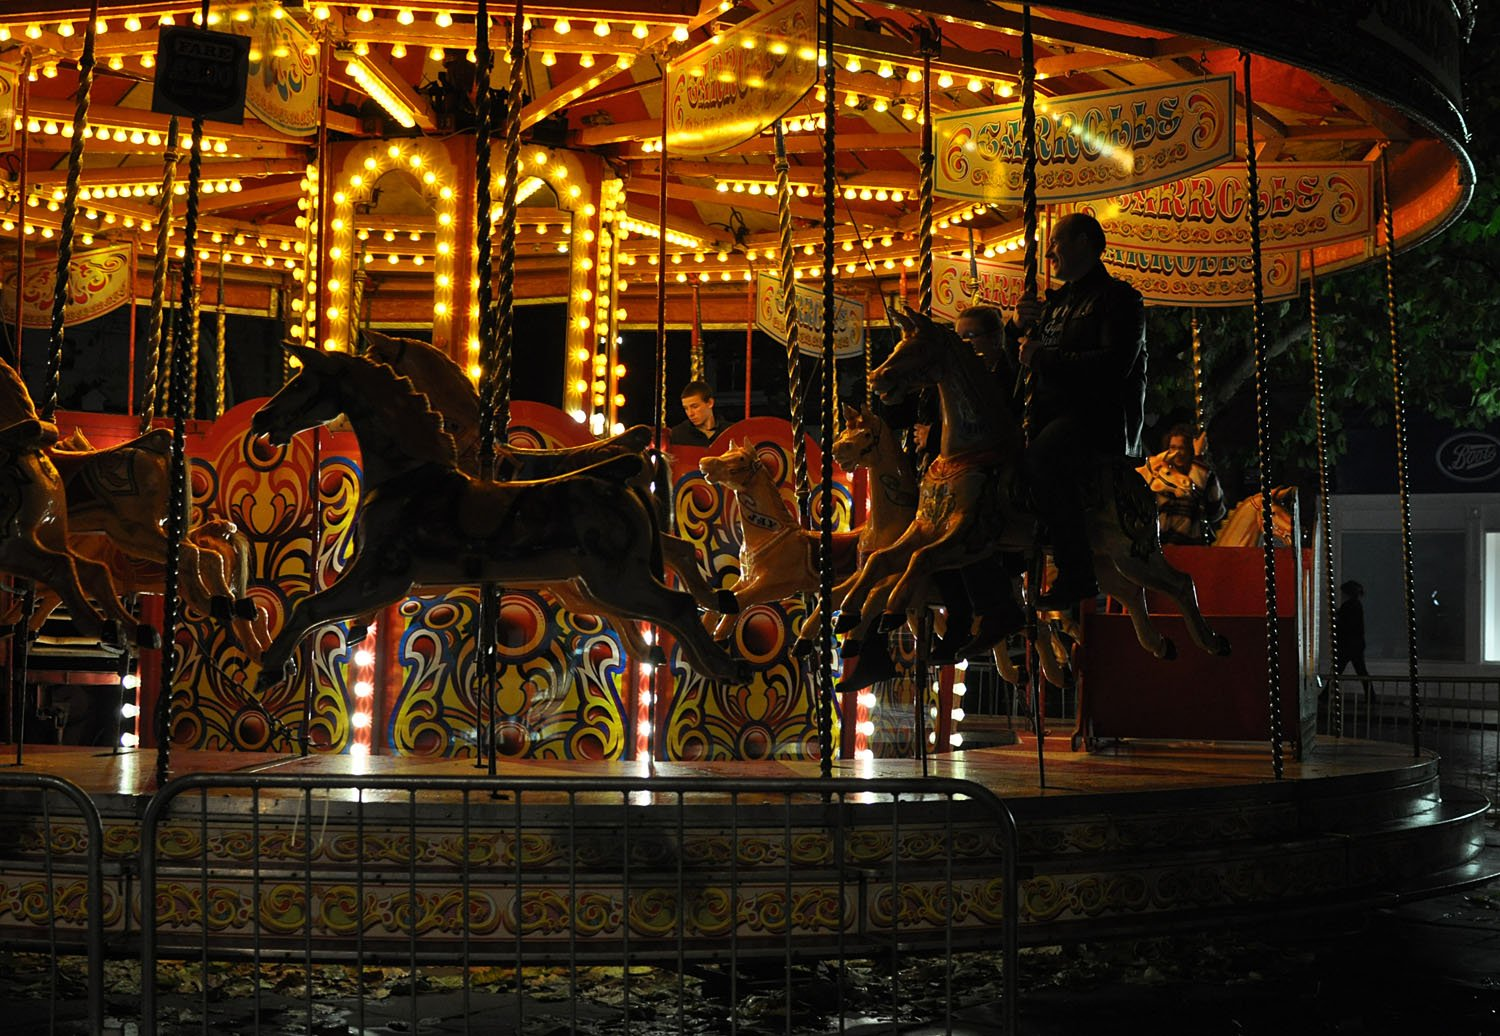 Illuminating York 2015 - The Carousel in Davygate